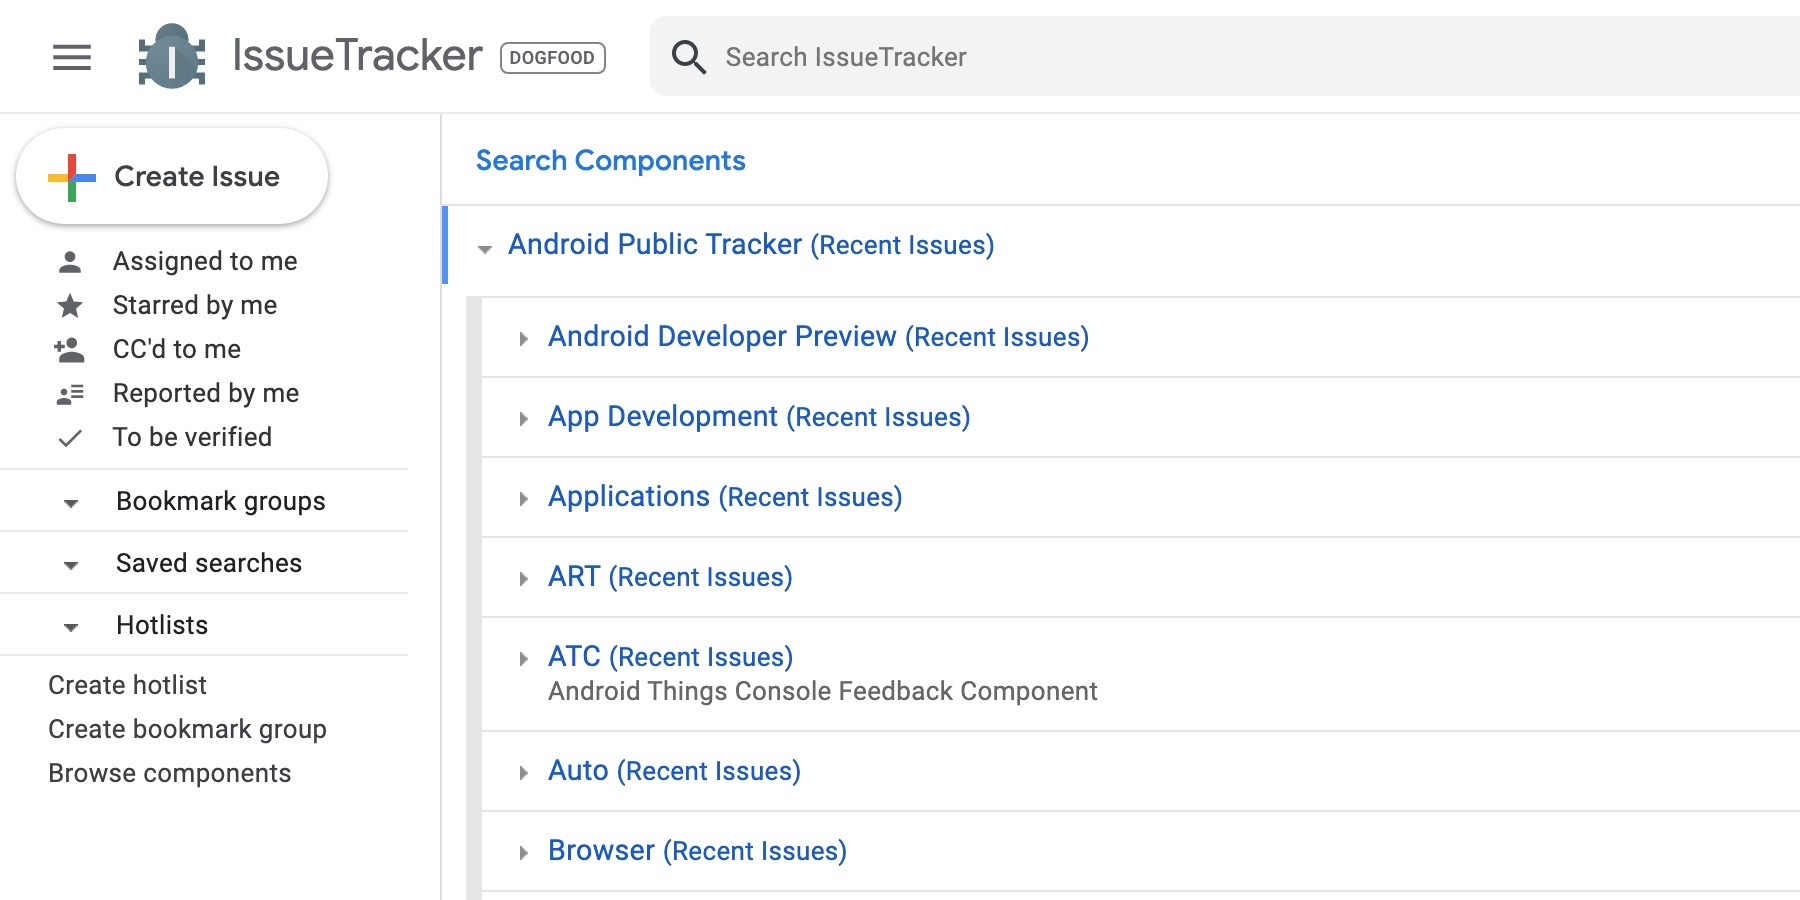 Google Issue Tracker testing Material Theme redesign - 9to5Google